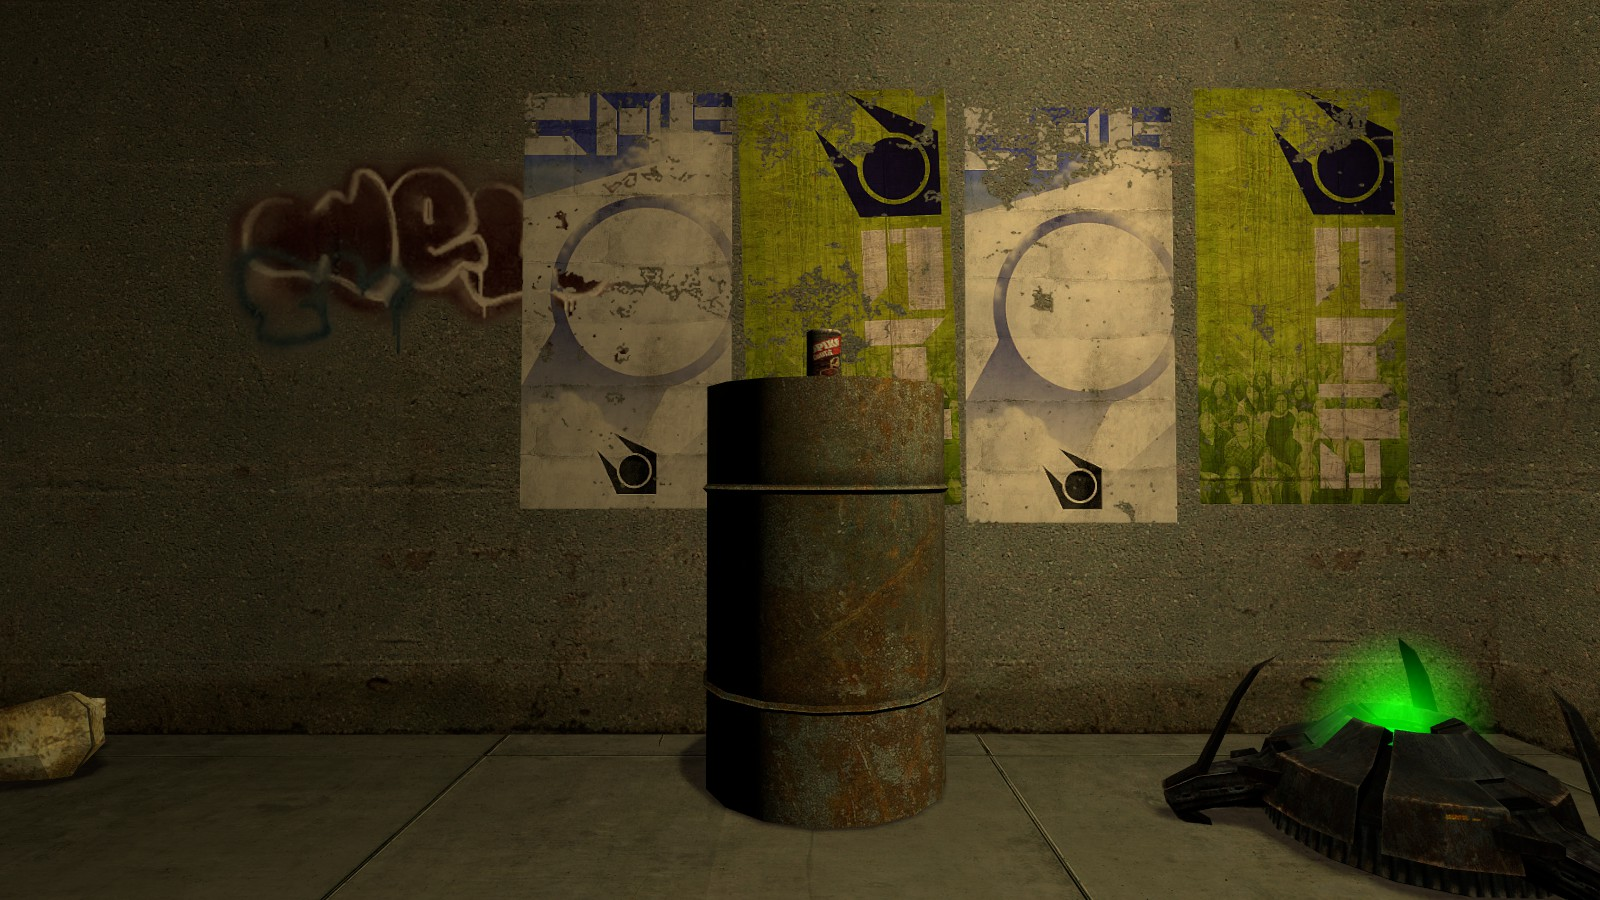 Half life 2 episode 1 texture - Zoe american horror story style